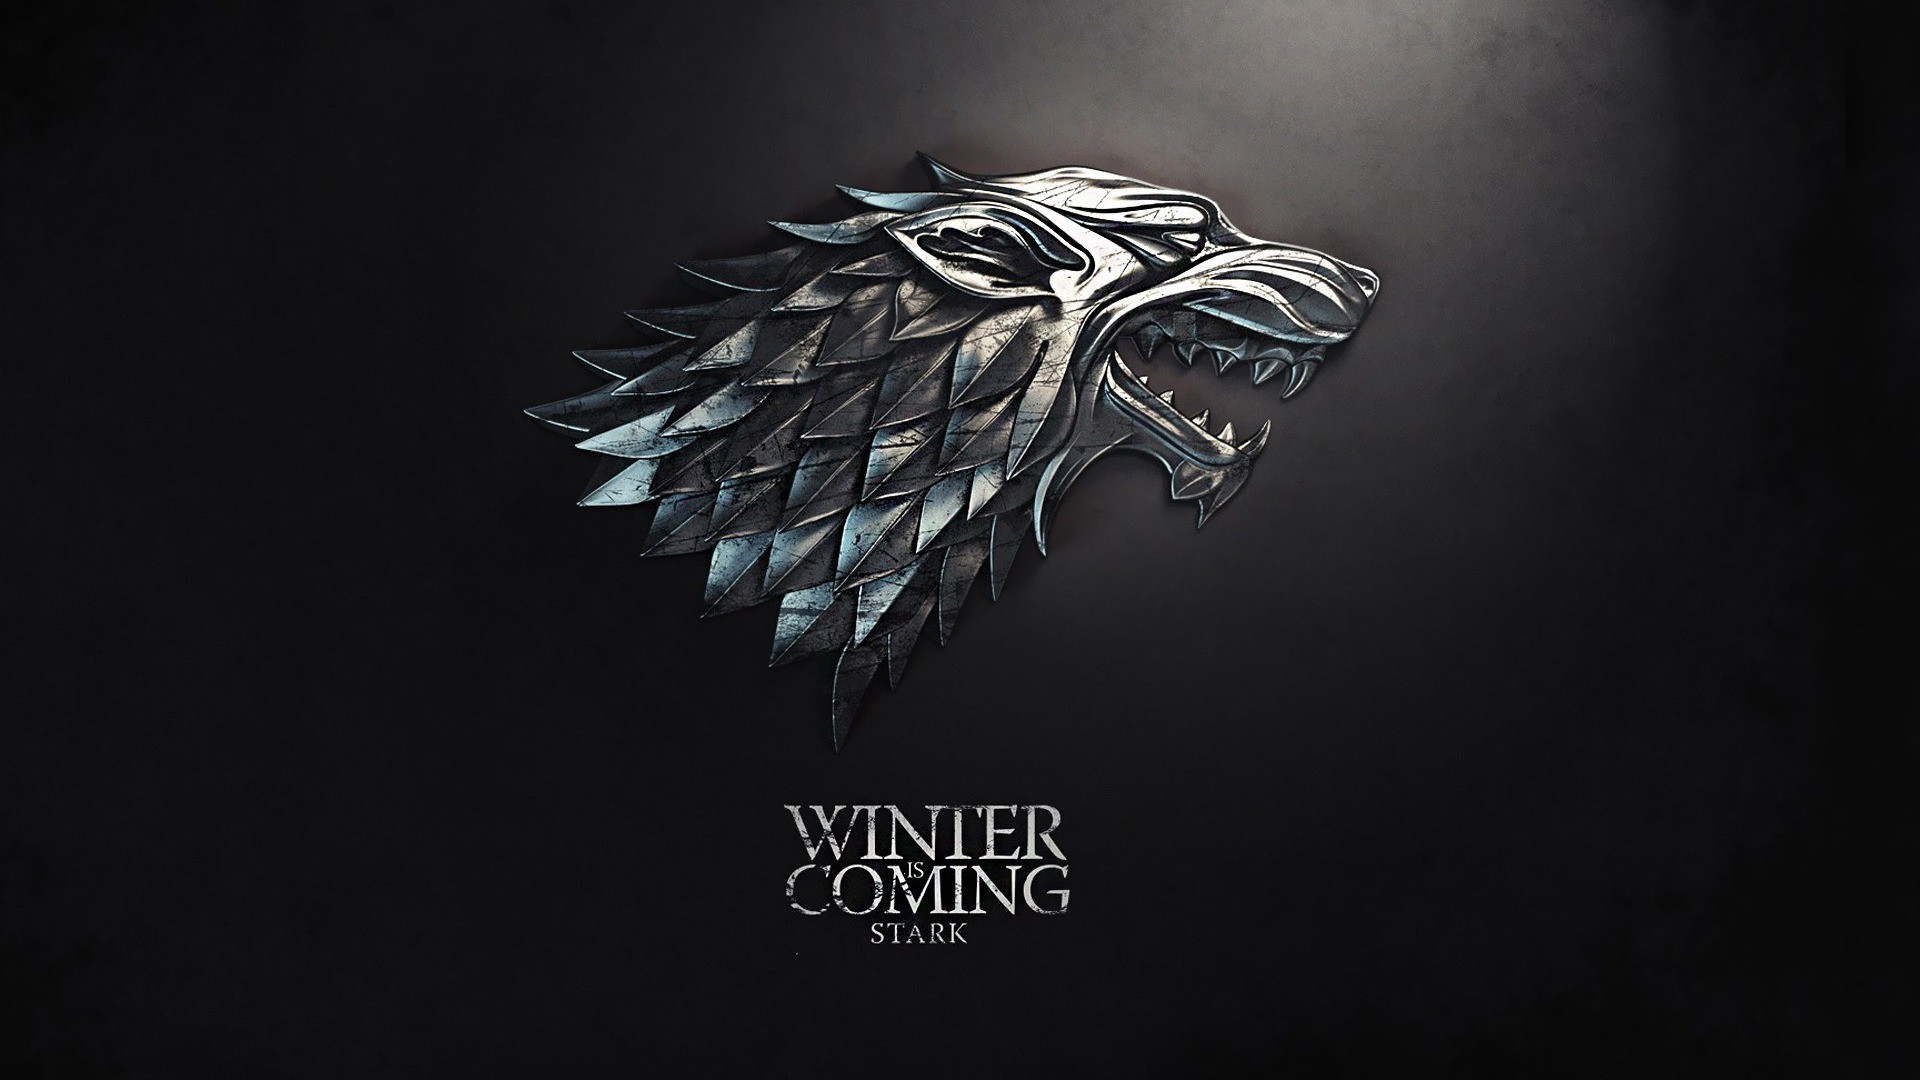 Fonds d'écran Game Of Thrones : tous les wallpapers Game Of Thrones